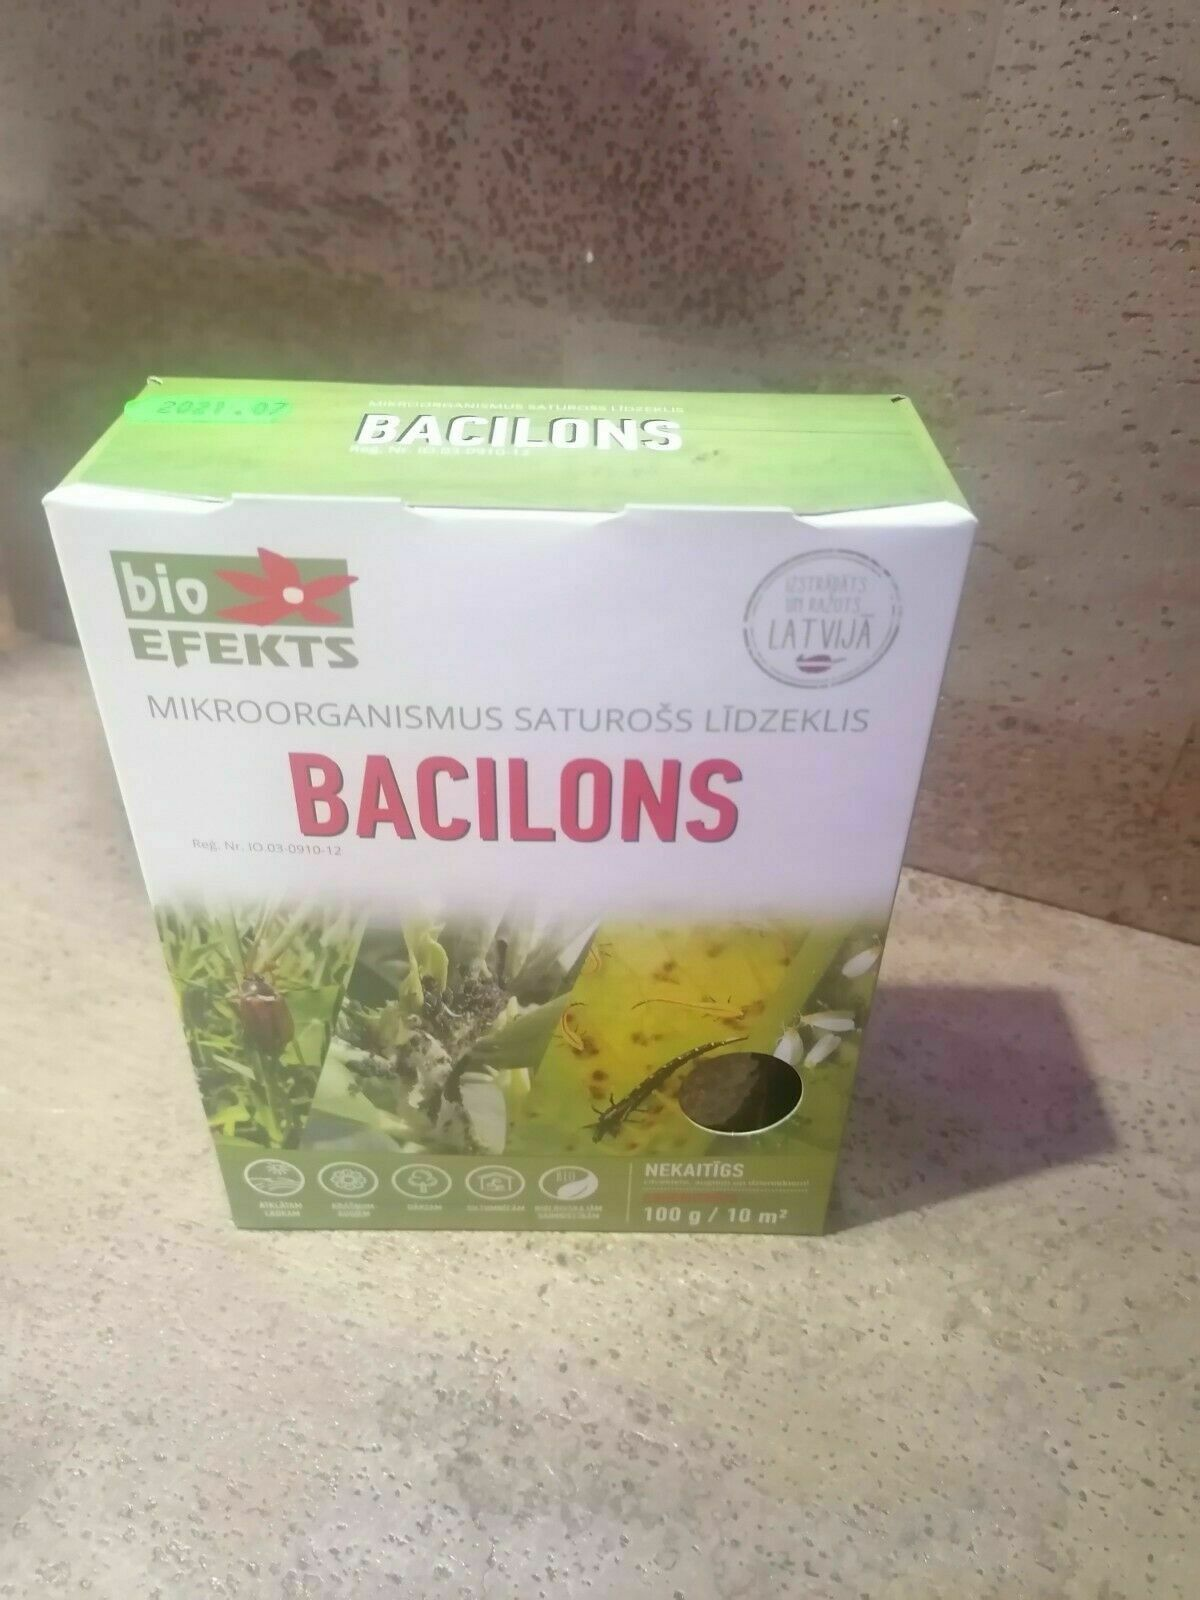 Bacillon Bioinsecticide Bacillus thuringiensis 100g ready to use mix.